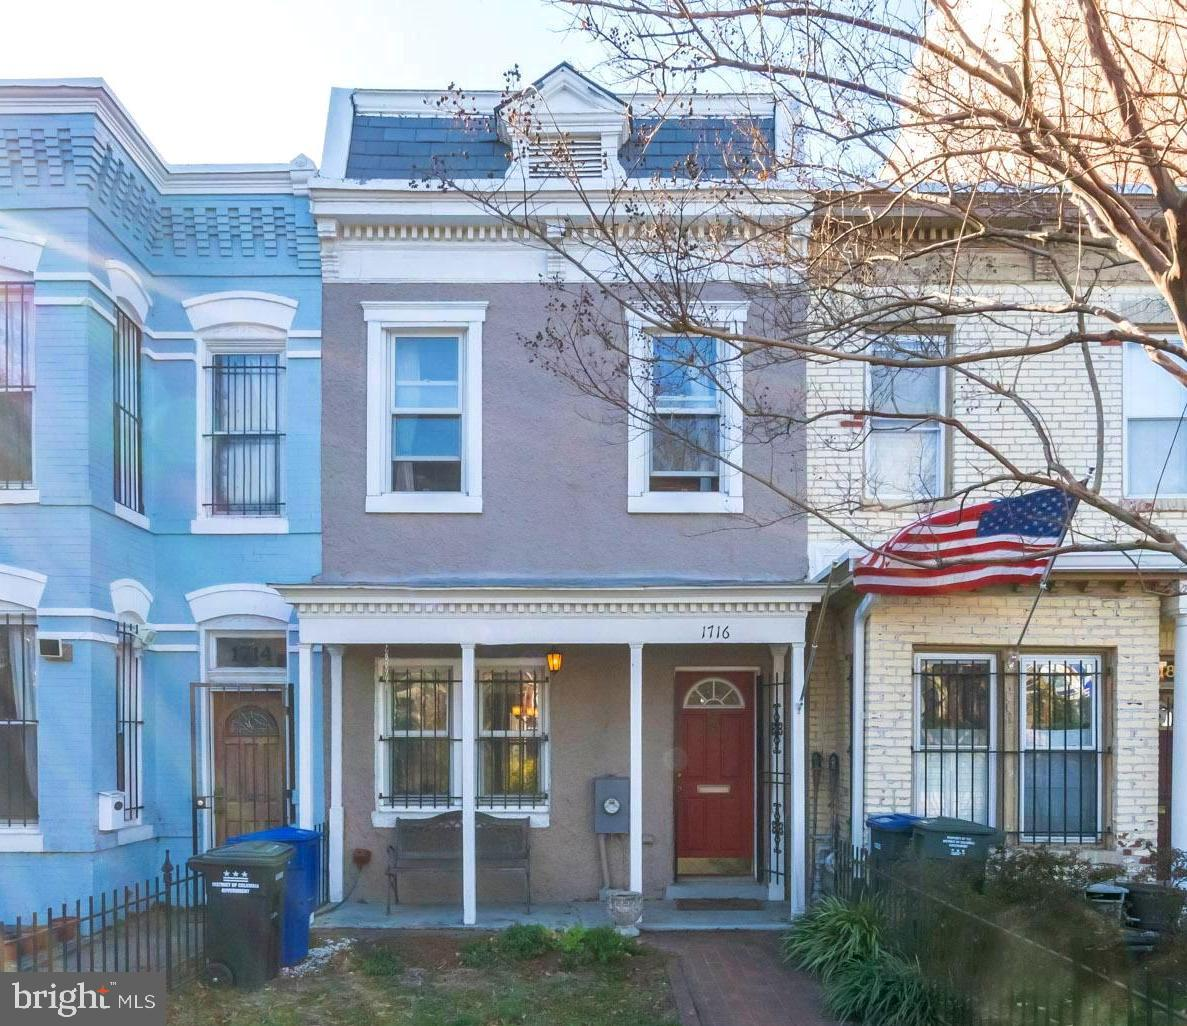 1716 NEW JERSEY AVENUE NW, WASHINGTON, District of Columbia